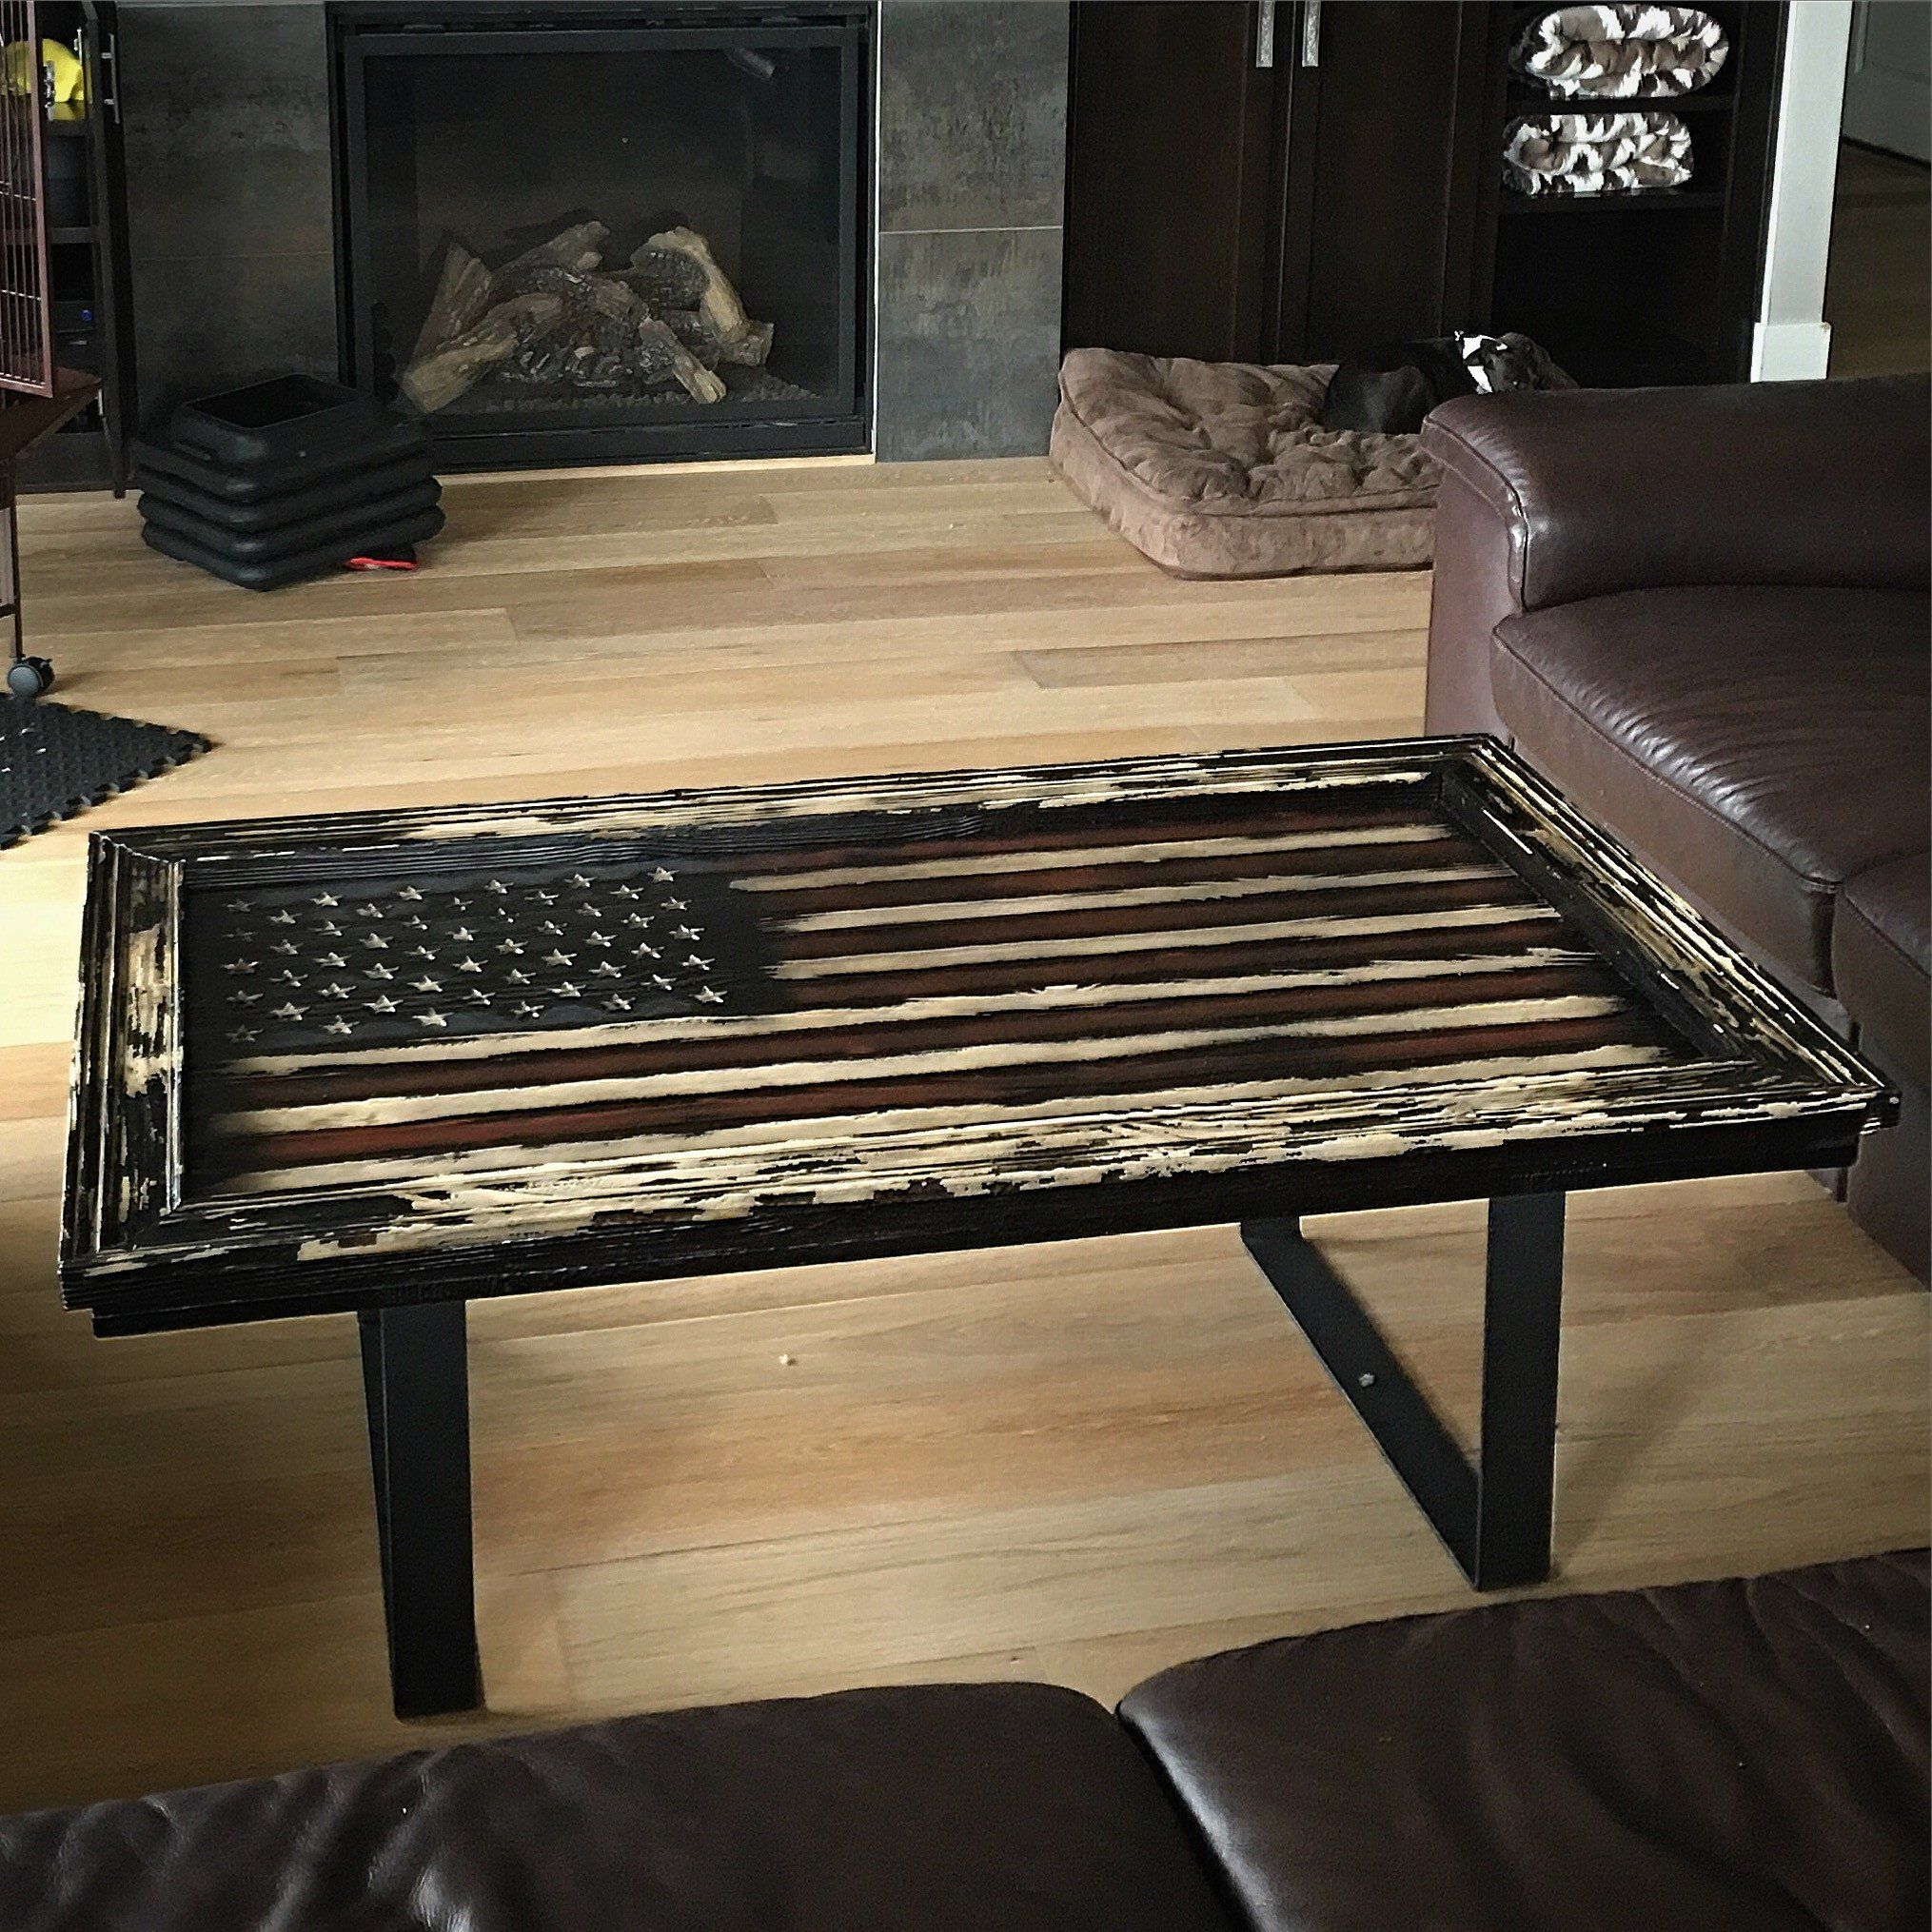 Distressed American Flag Coffee Table: Betsy's Colonial Freedom American Flag Coffee Table